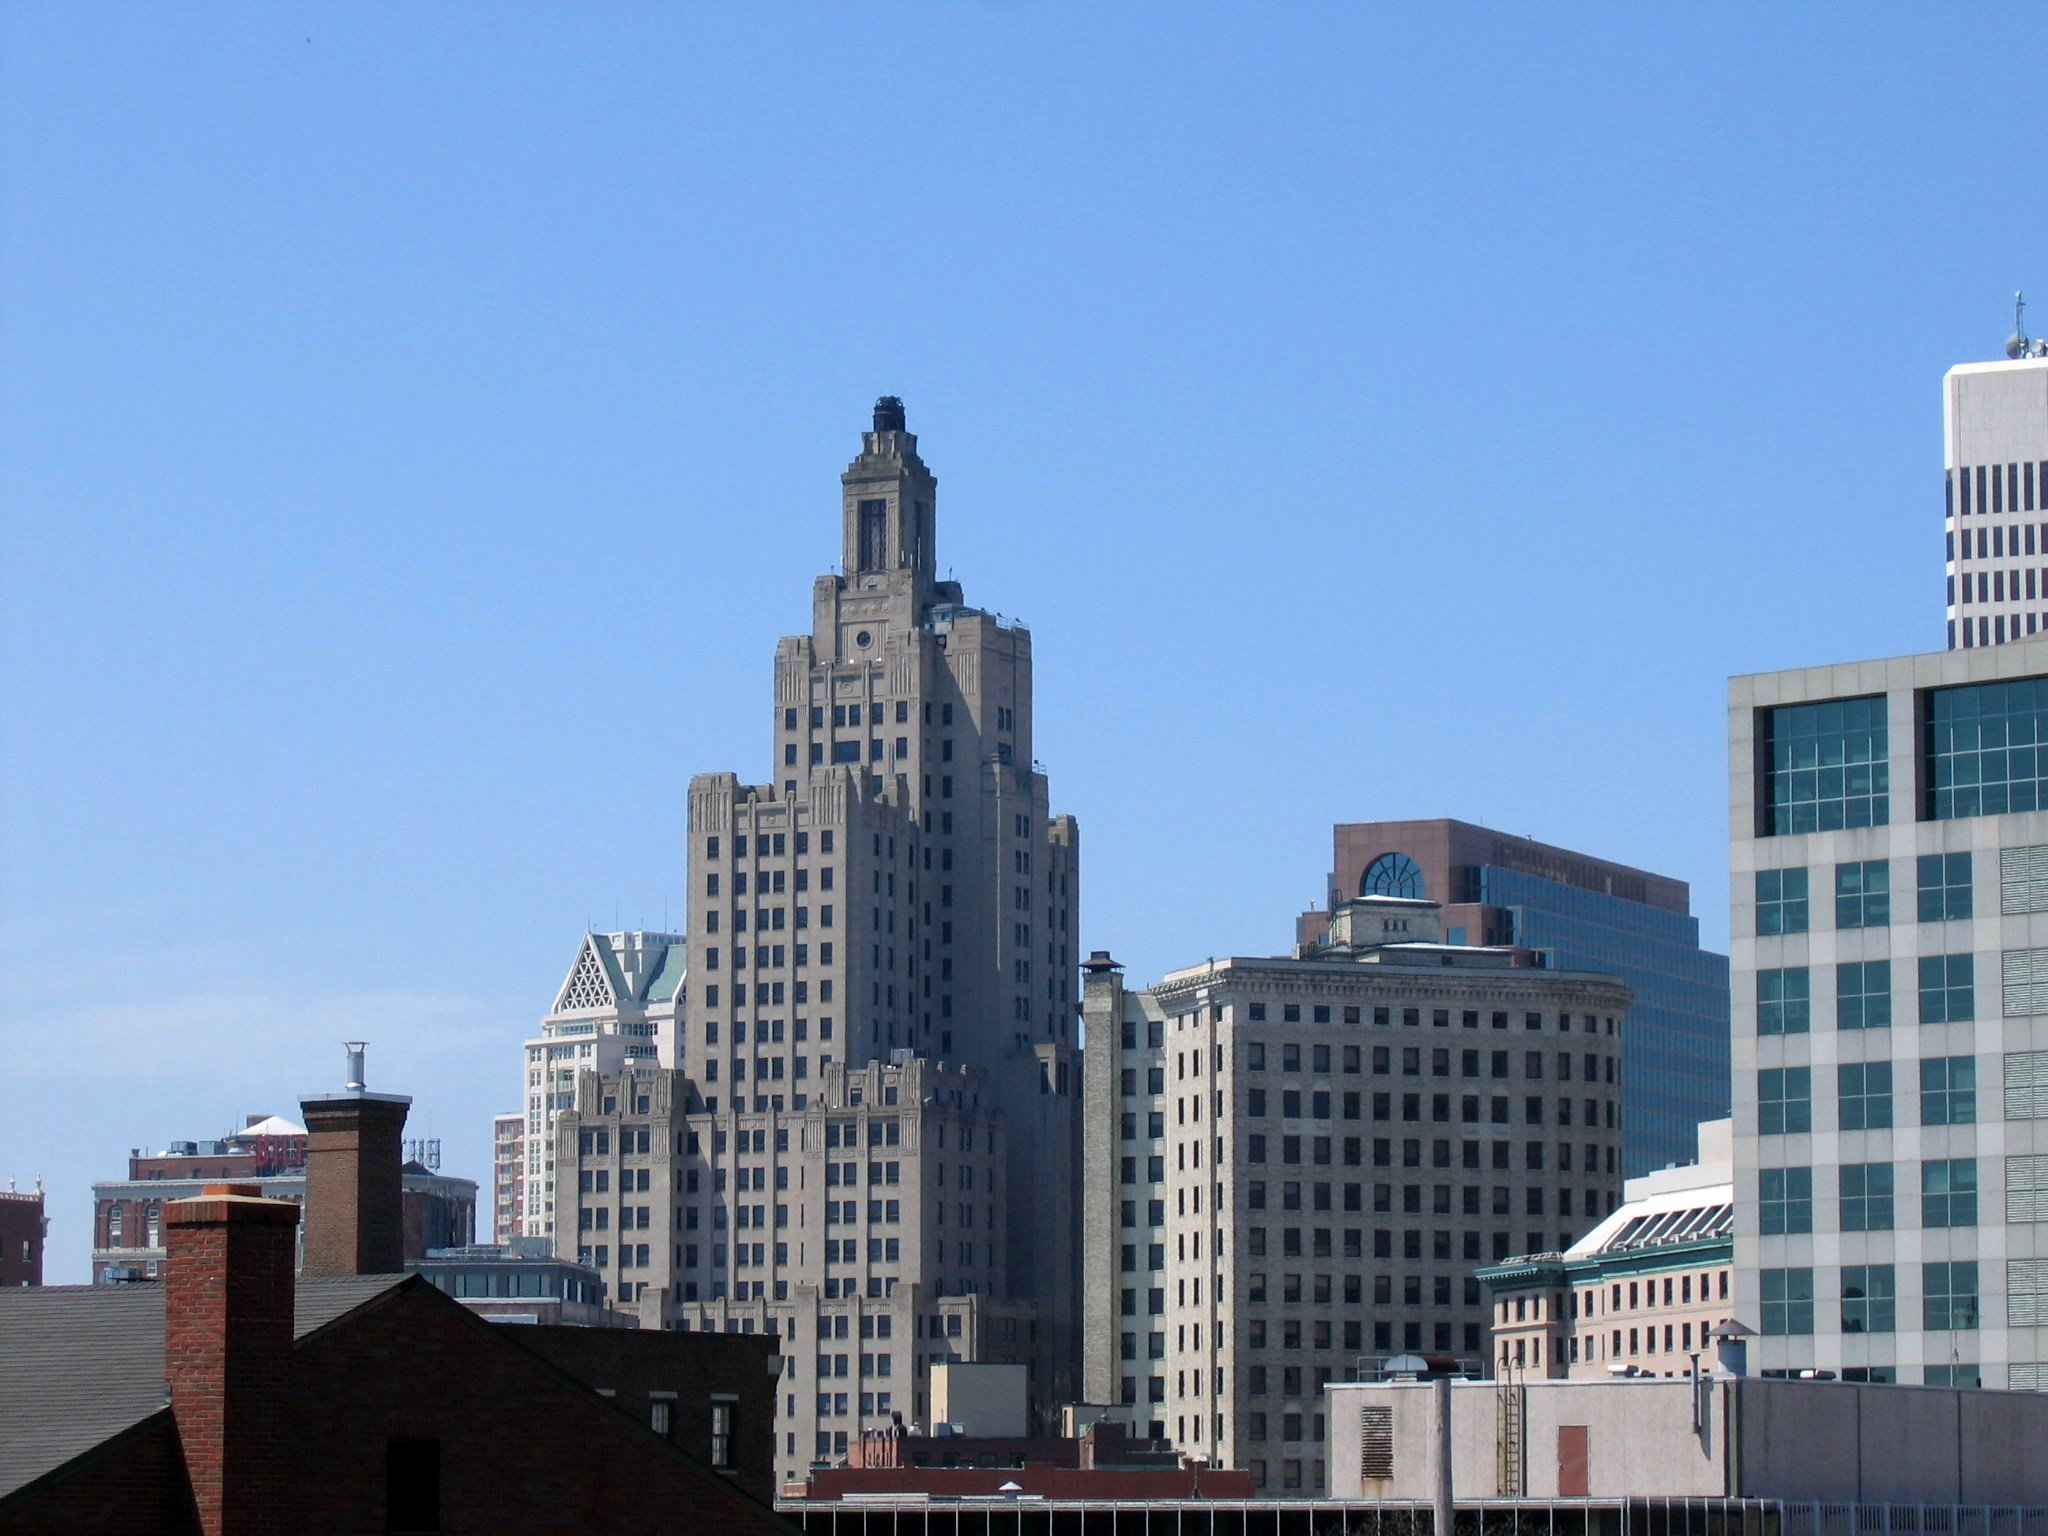 What can one do with a 'Superman Building' in Providence, RI?  Housing, of course, because no one would be stupid enough to create jobs & prosperity in the heart of a Democrat sewer.